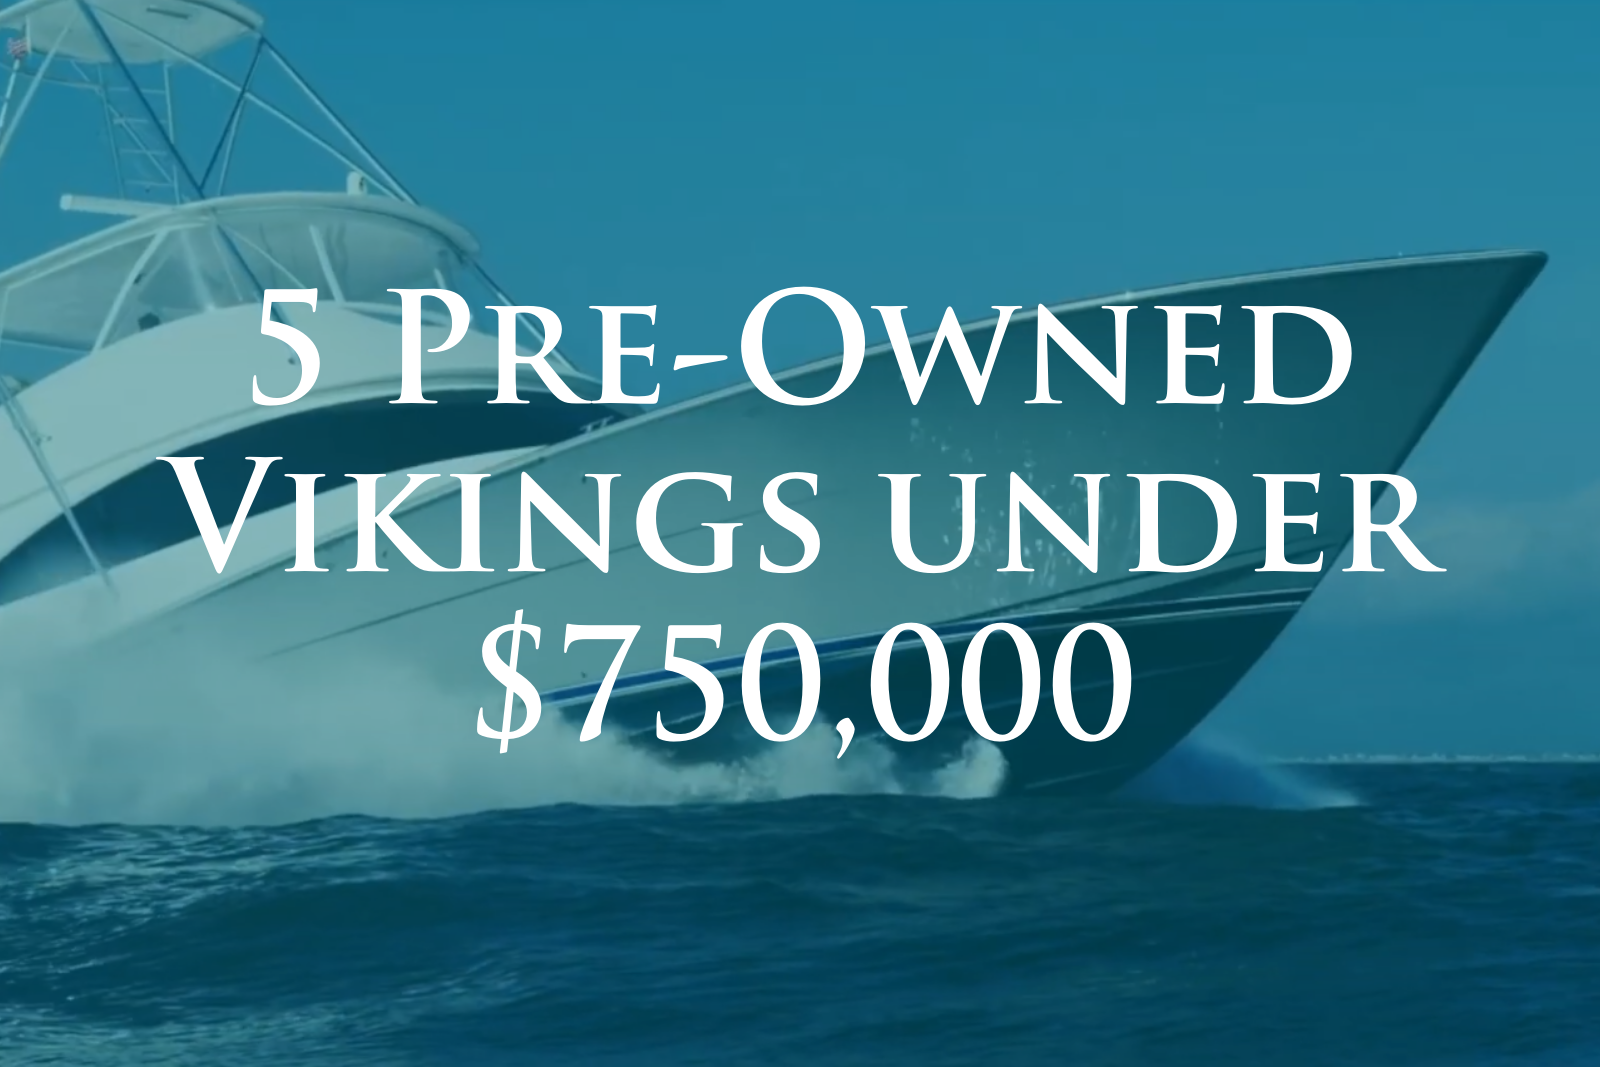 5 Pre-Owned Viking Convertibles Priced Under $750,000